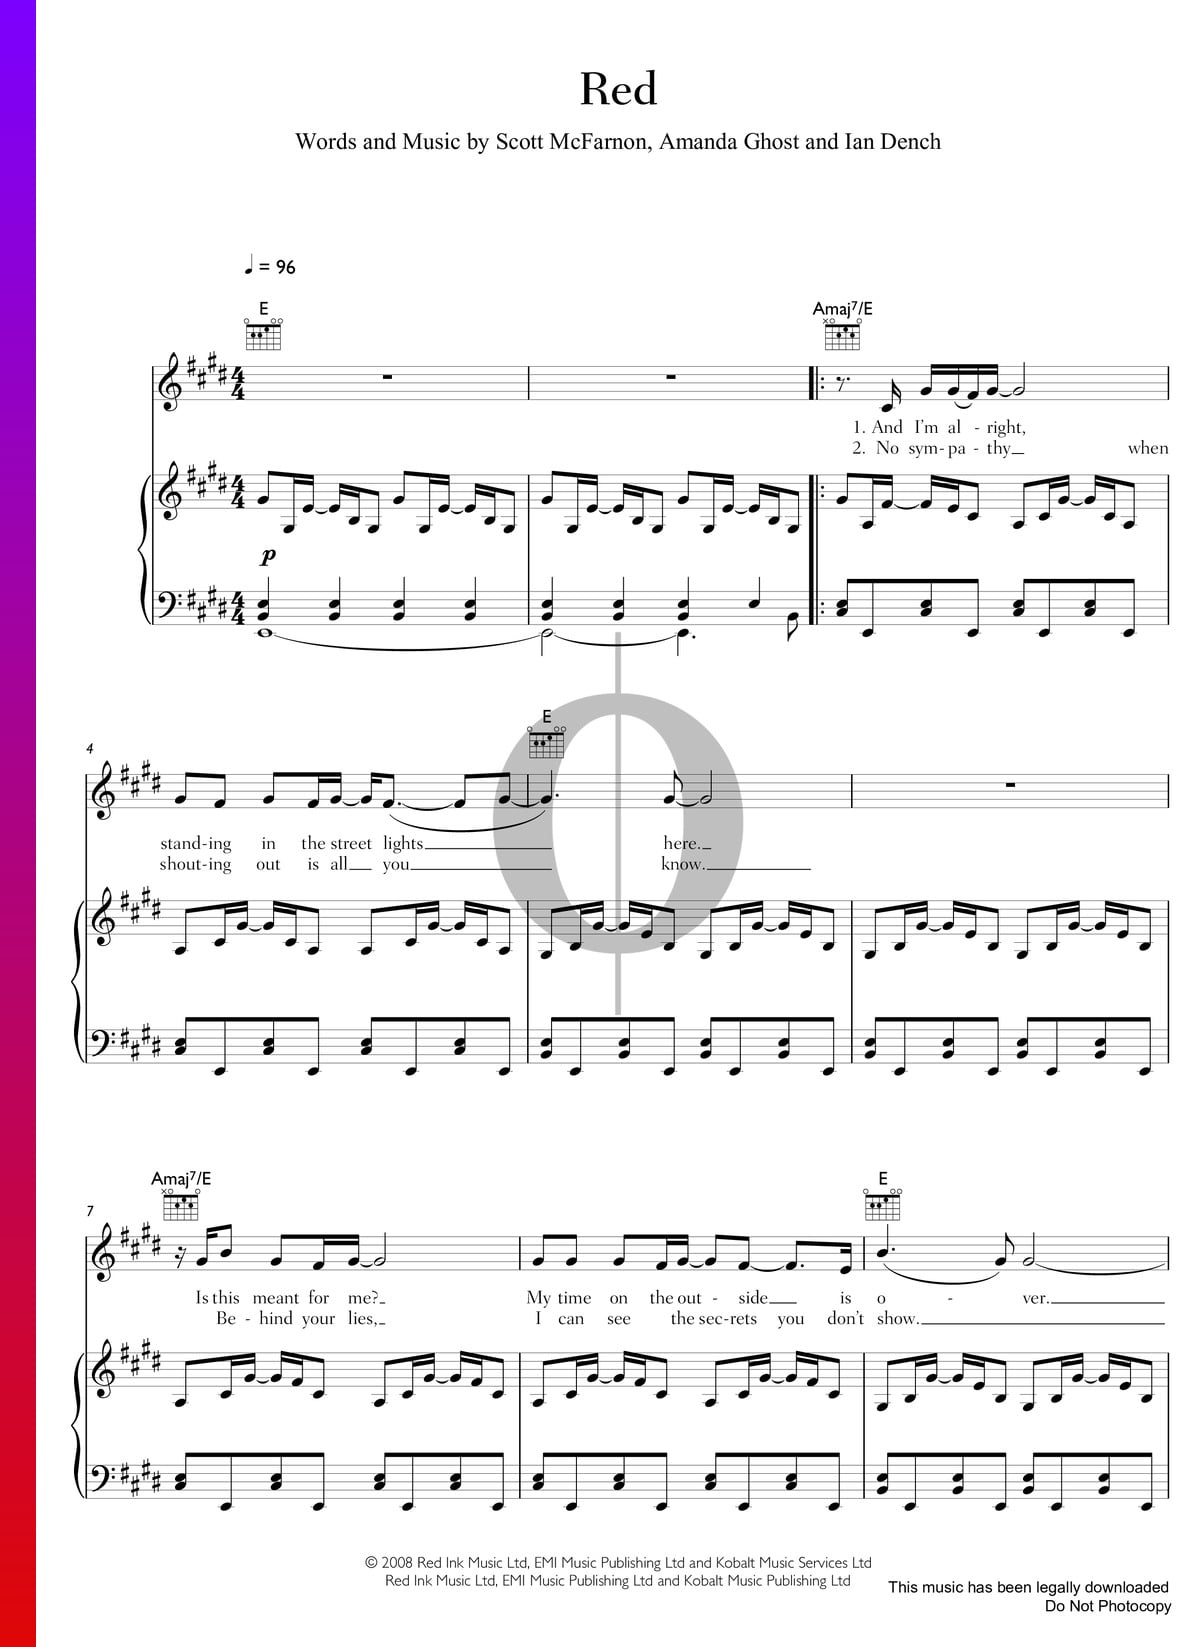 Red Sheet Music (Piano, Voice, Guitar) - PDF Download ...